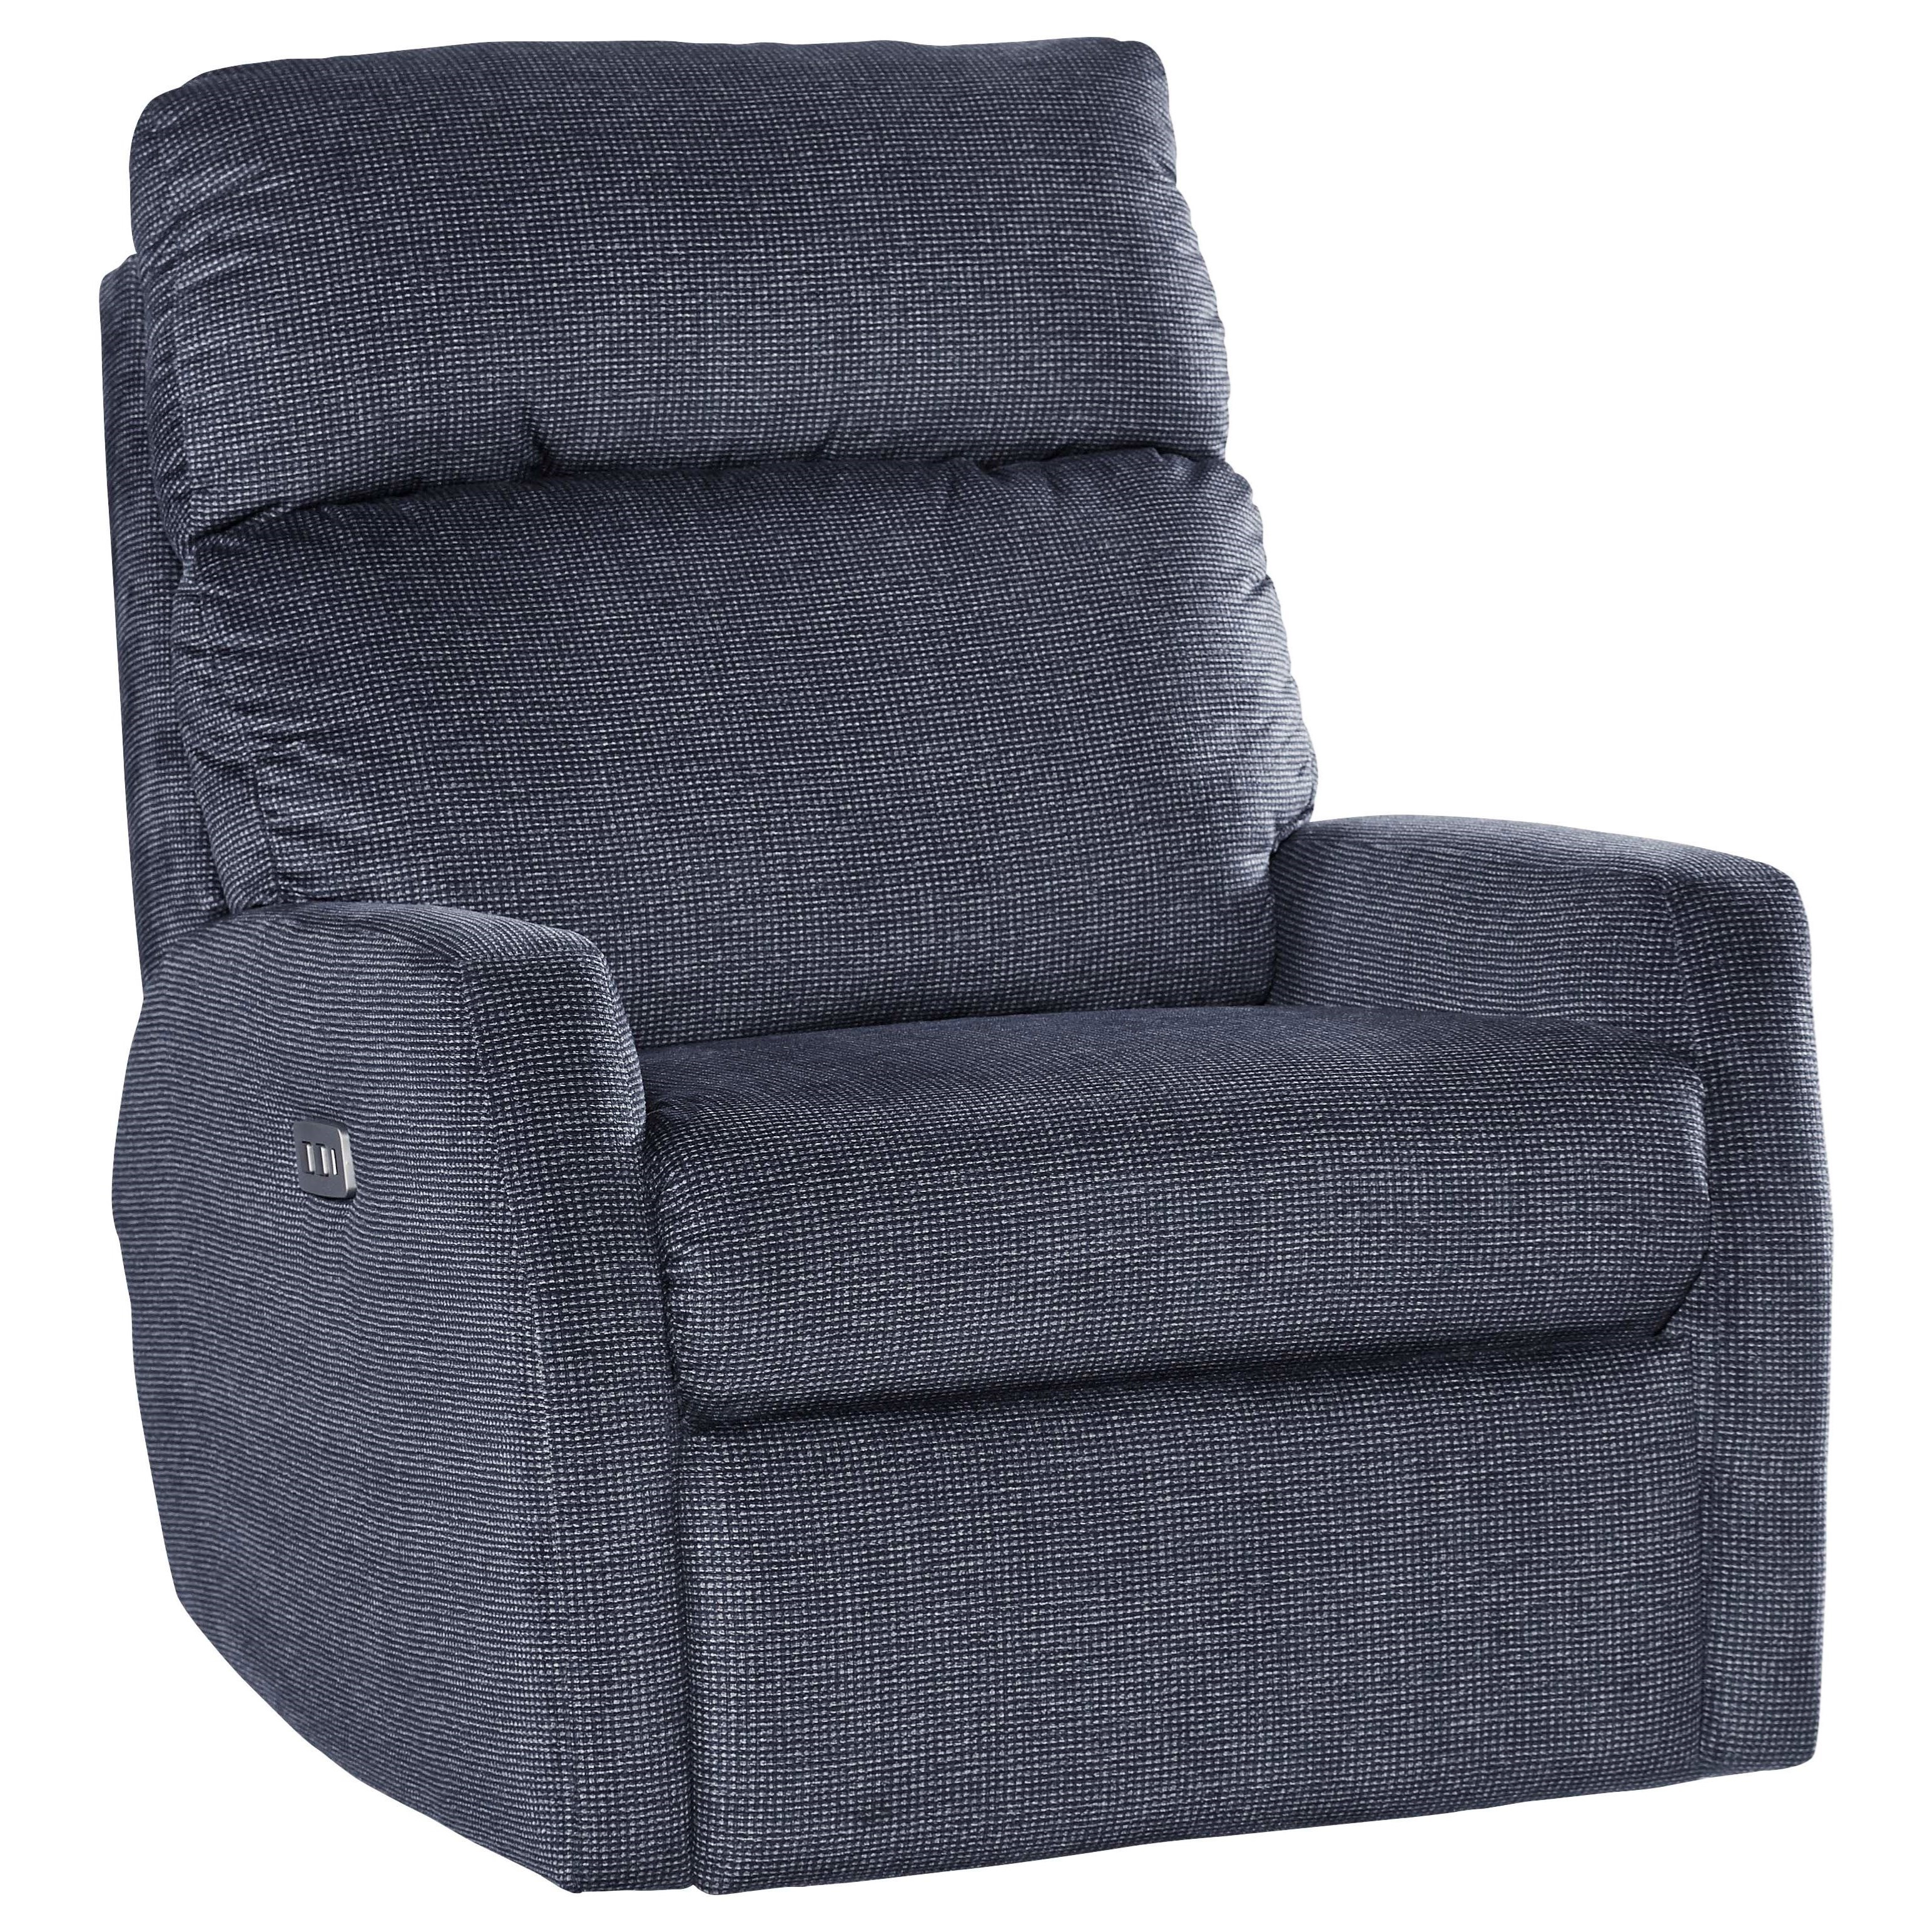 Mimi Power Headrest Layflat Lift Recliner at Sadler's Home Furnishings